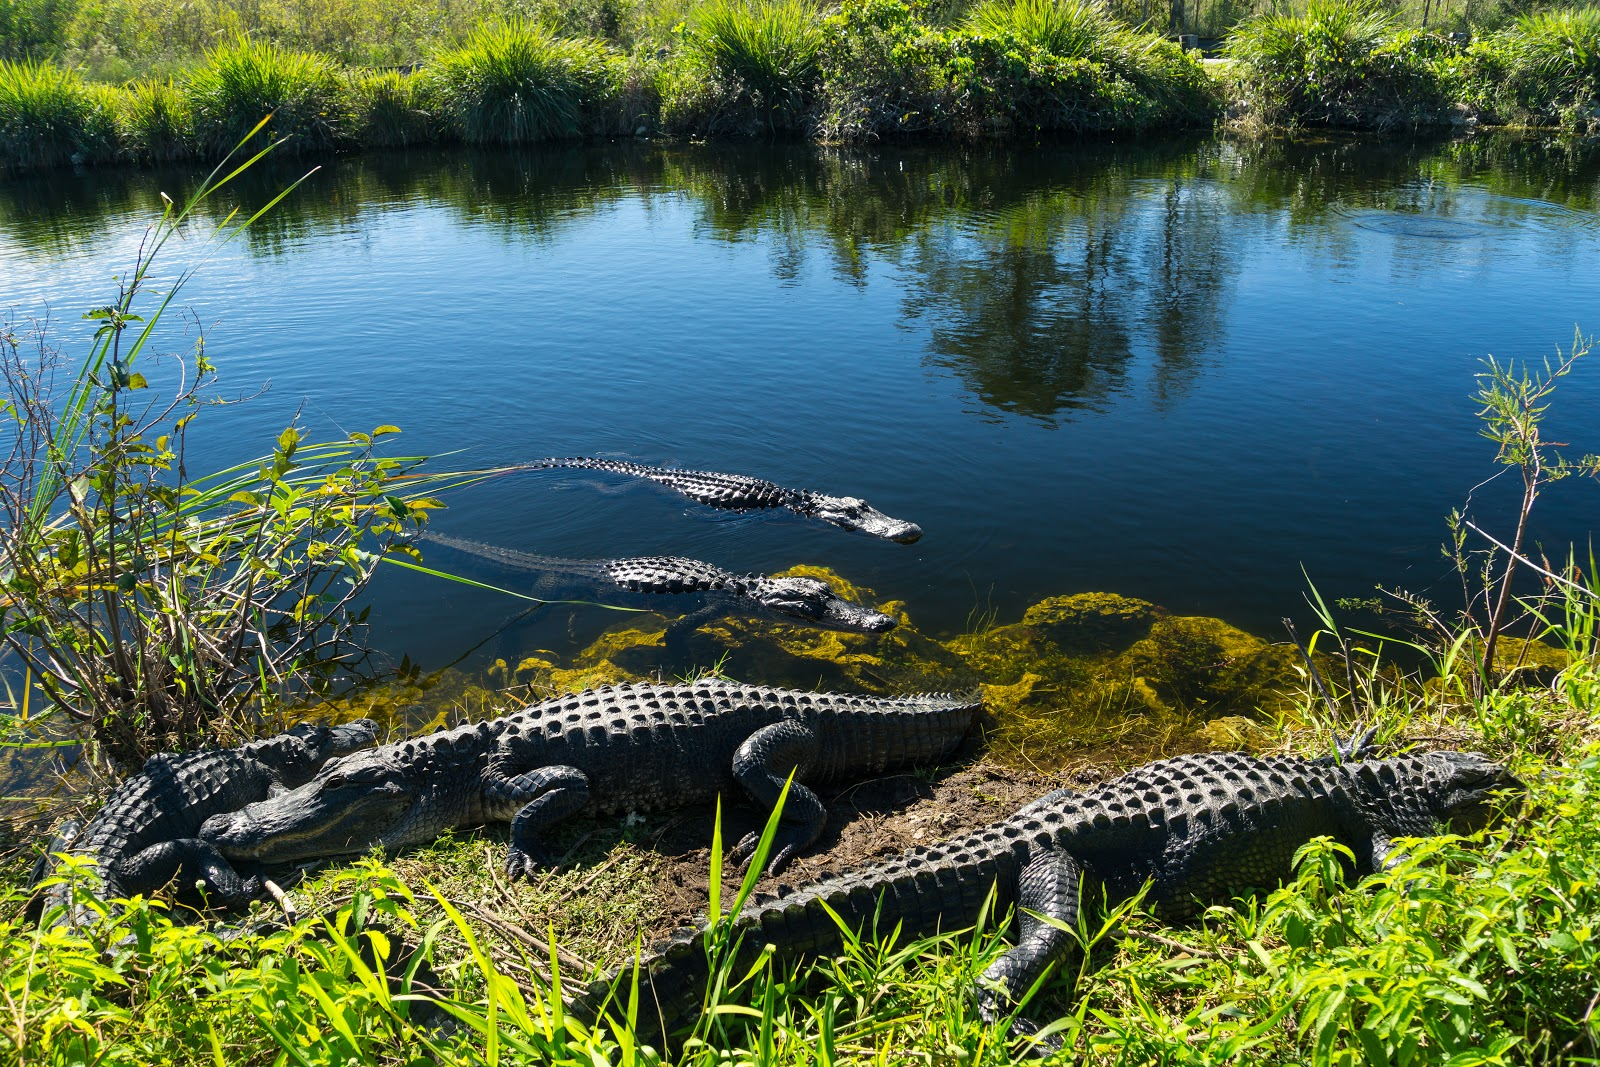 Five crocodiles sunbathing in the river and on the riverbank.